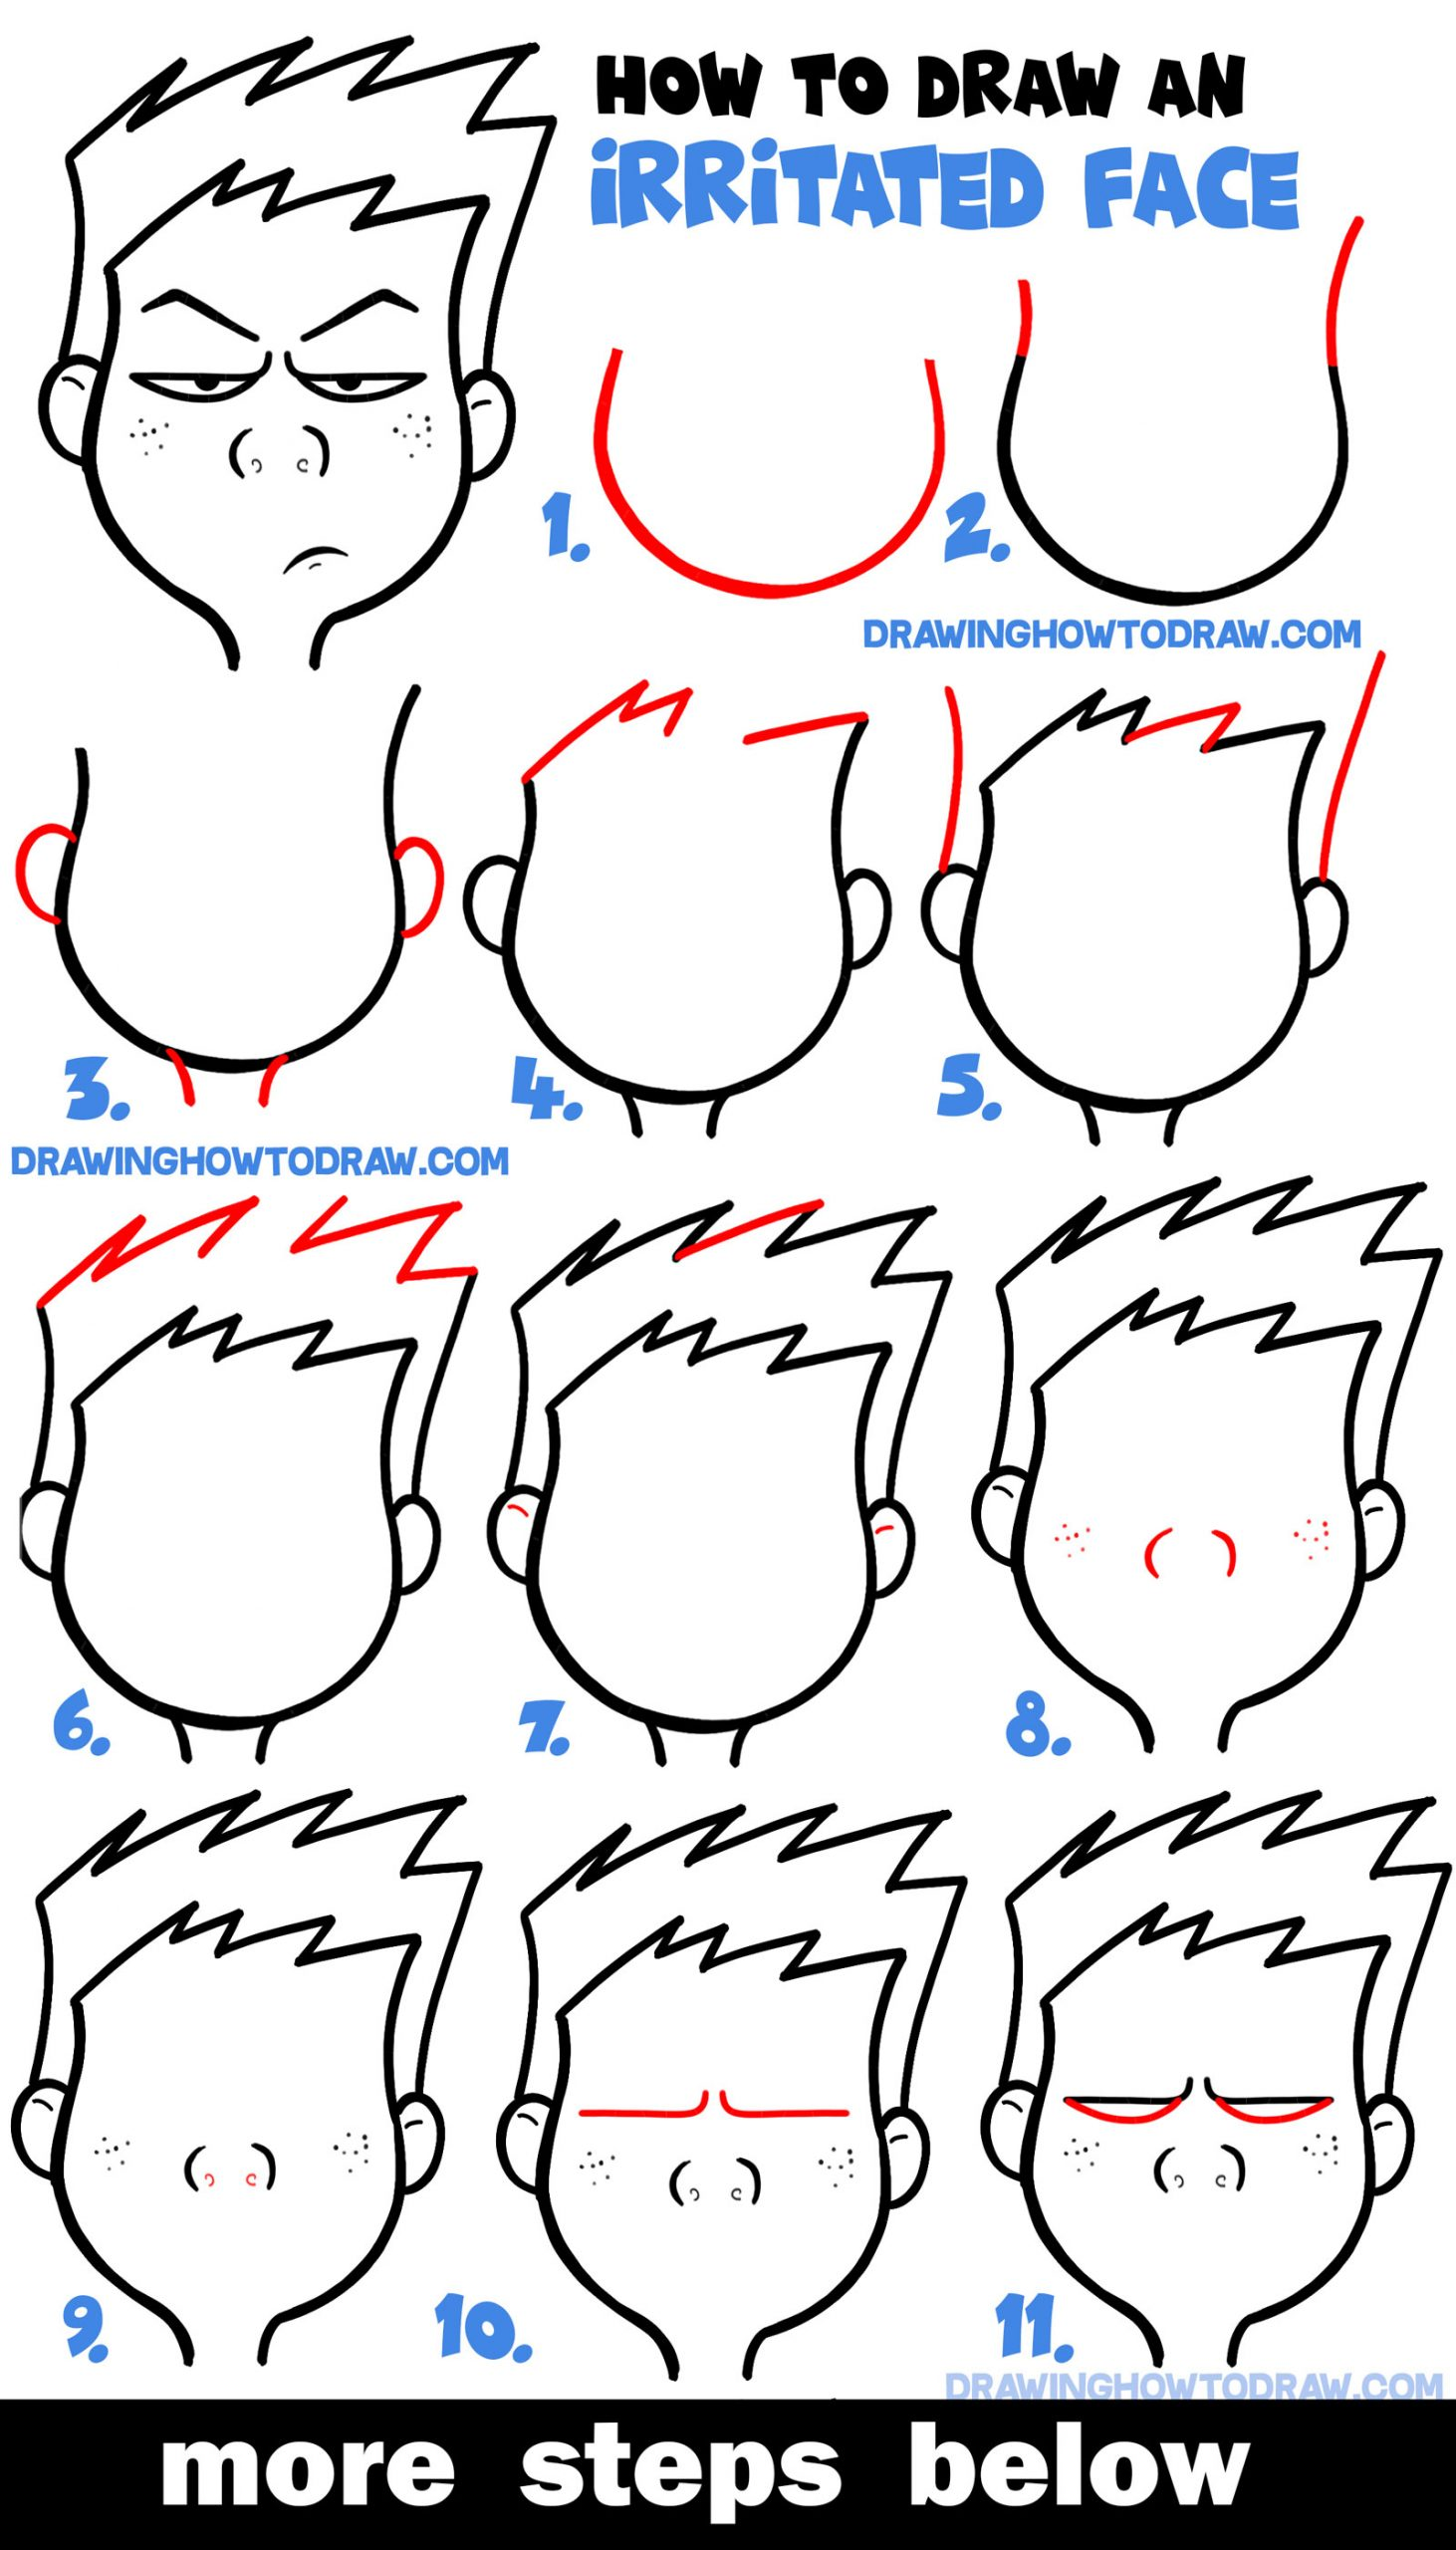 Learn How to Draw Cartoon Facial Expressions : Irritated, Agitated, Angry Faces Tutorial